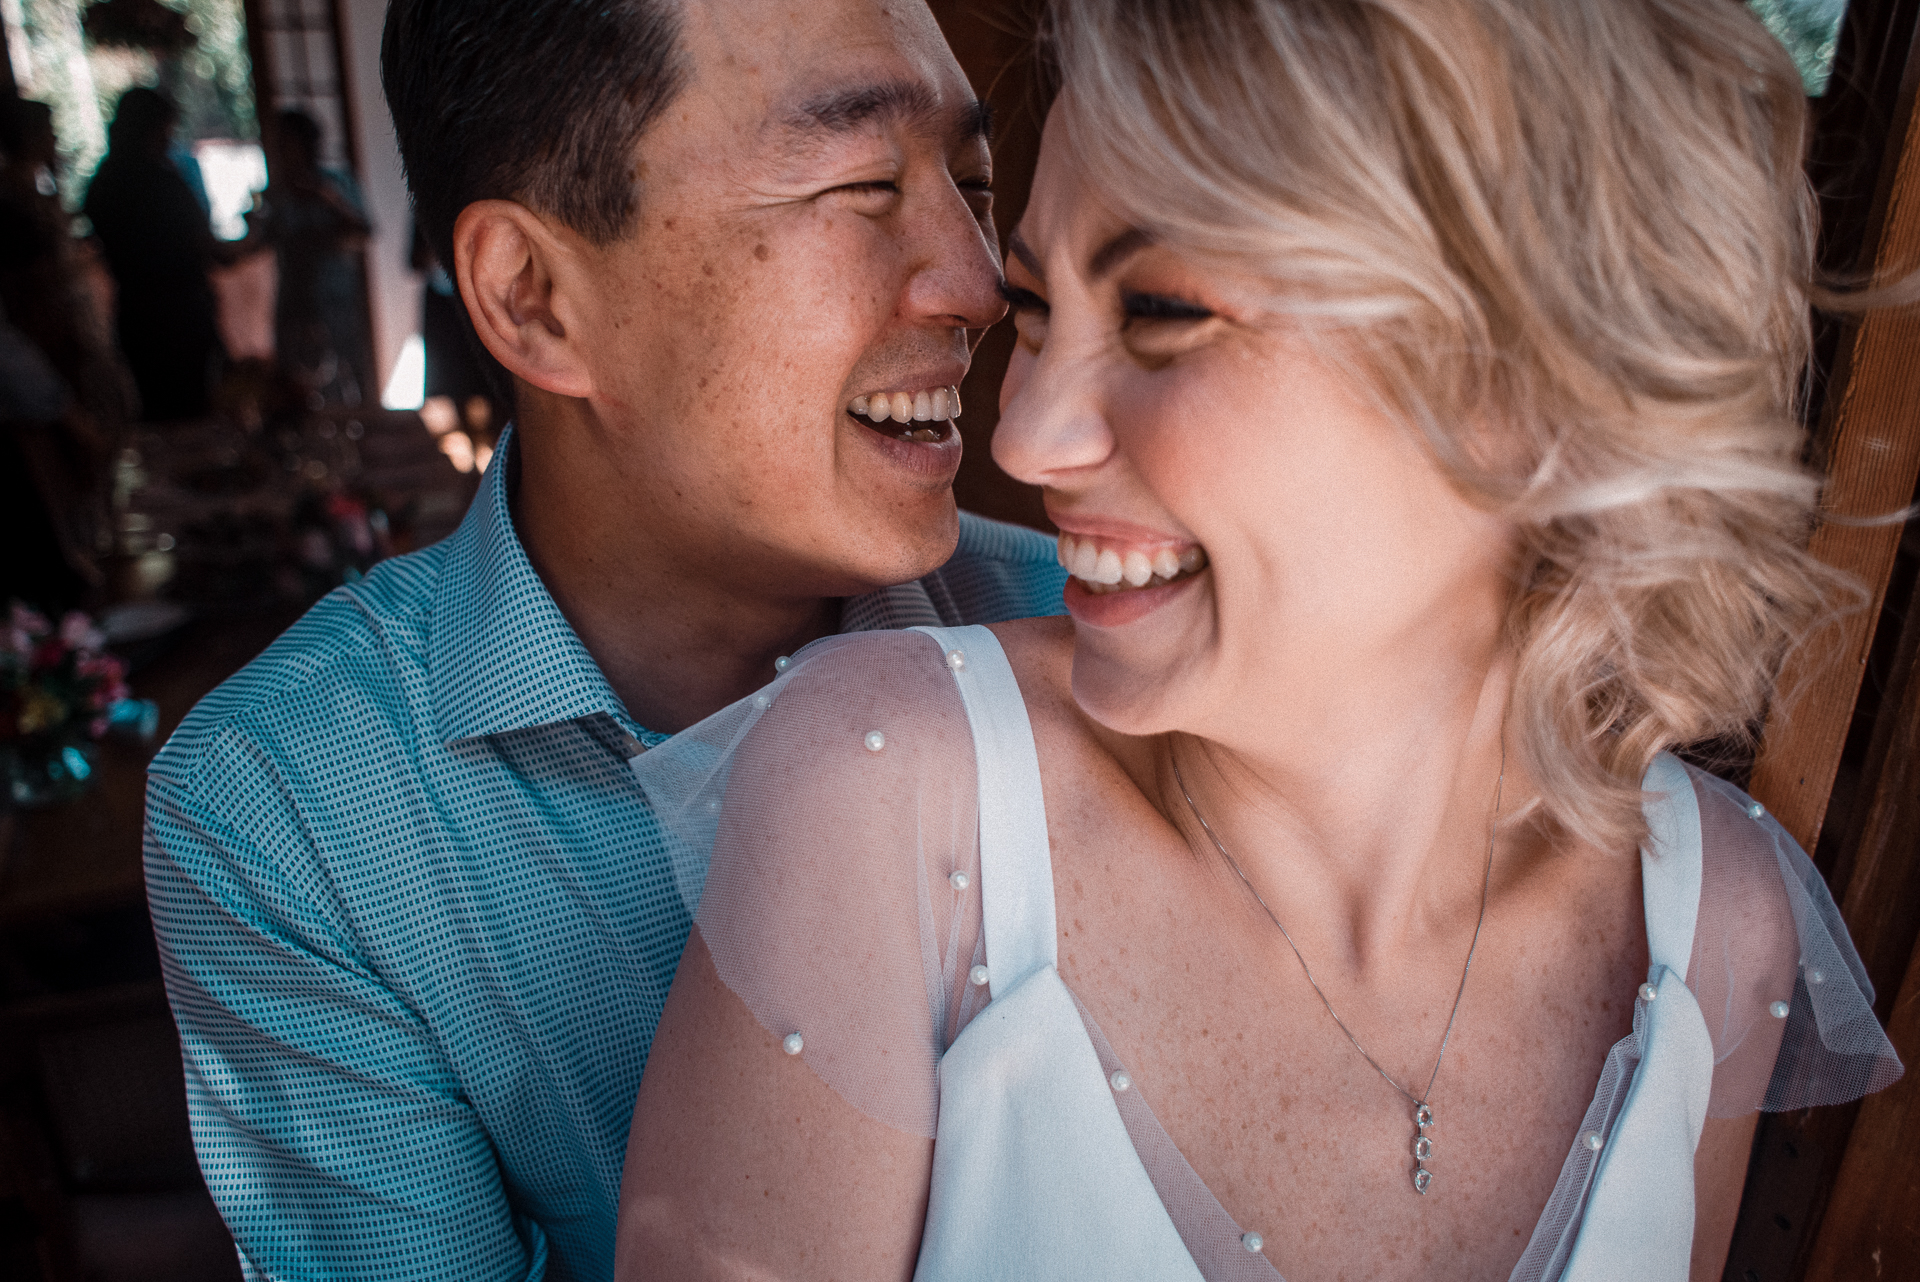 Wedding Couple Portrait Session in São Paulo, Brazil | The joy of a newly wed couple